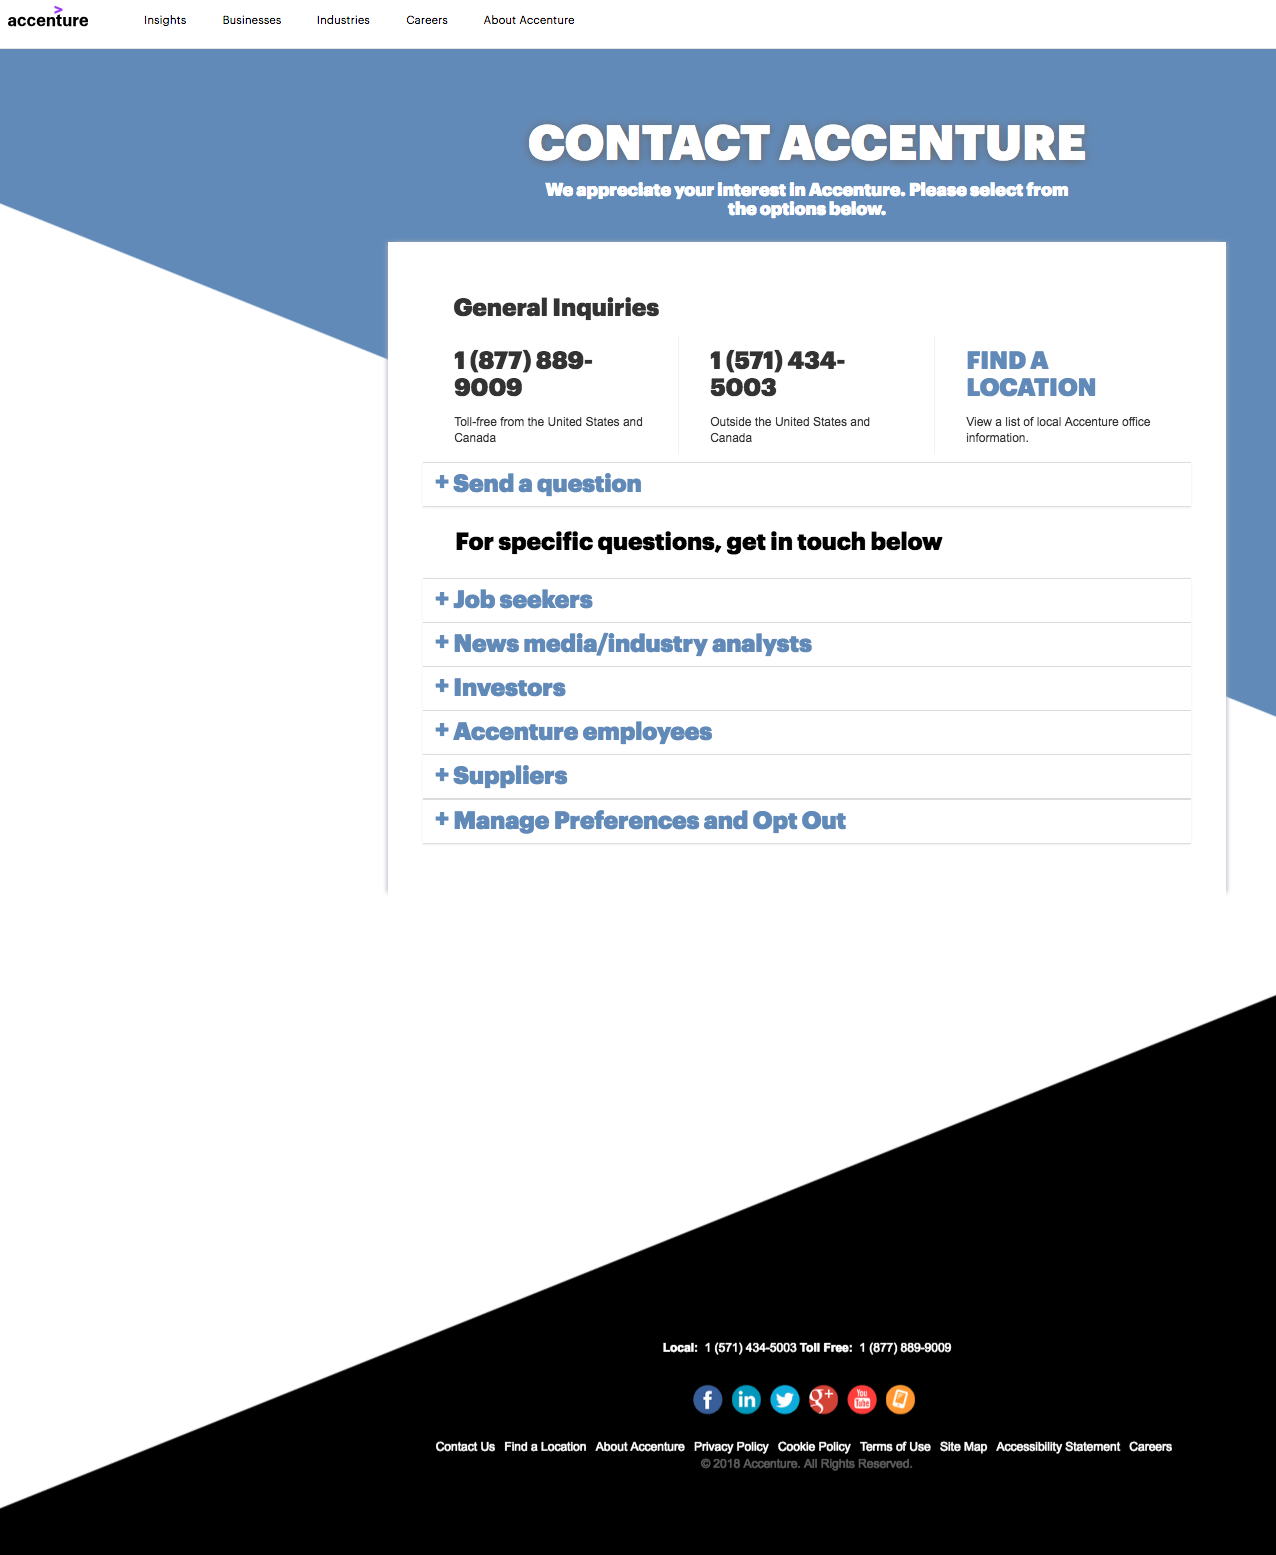 accenture-contact-us